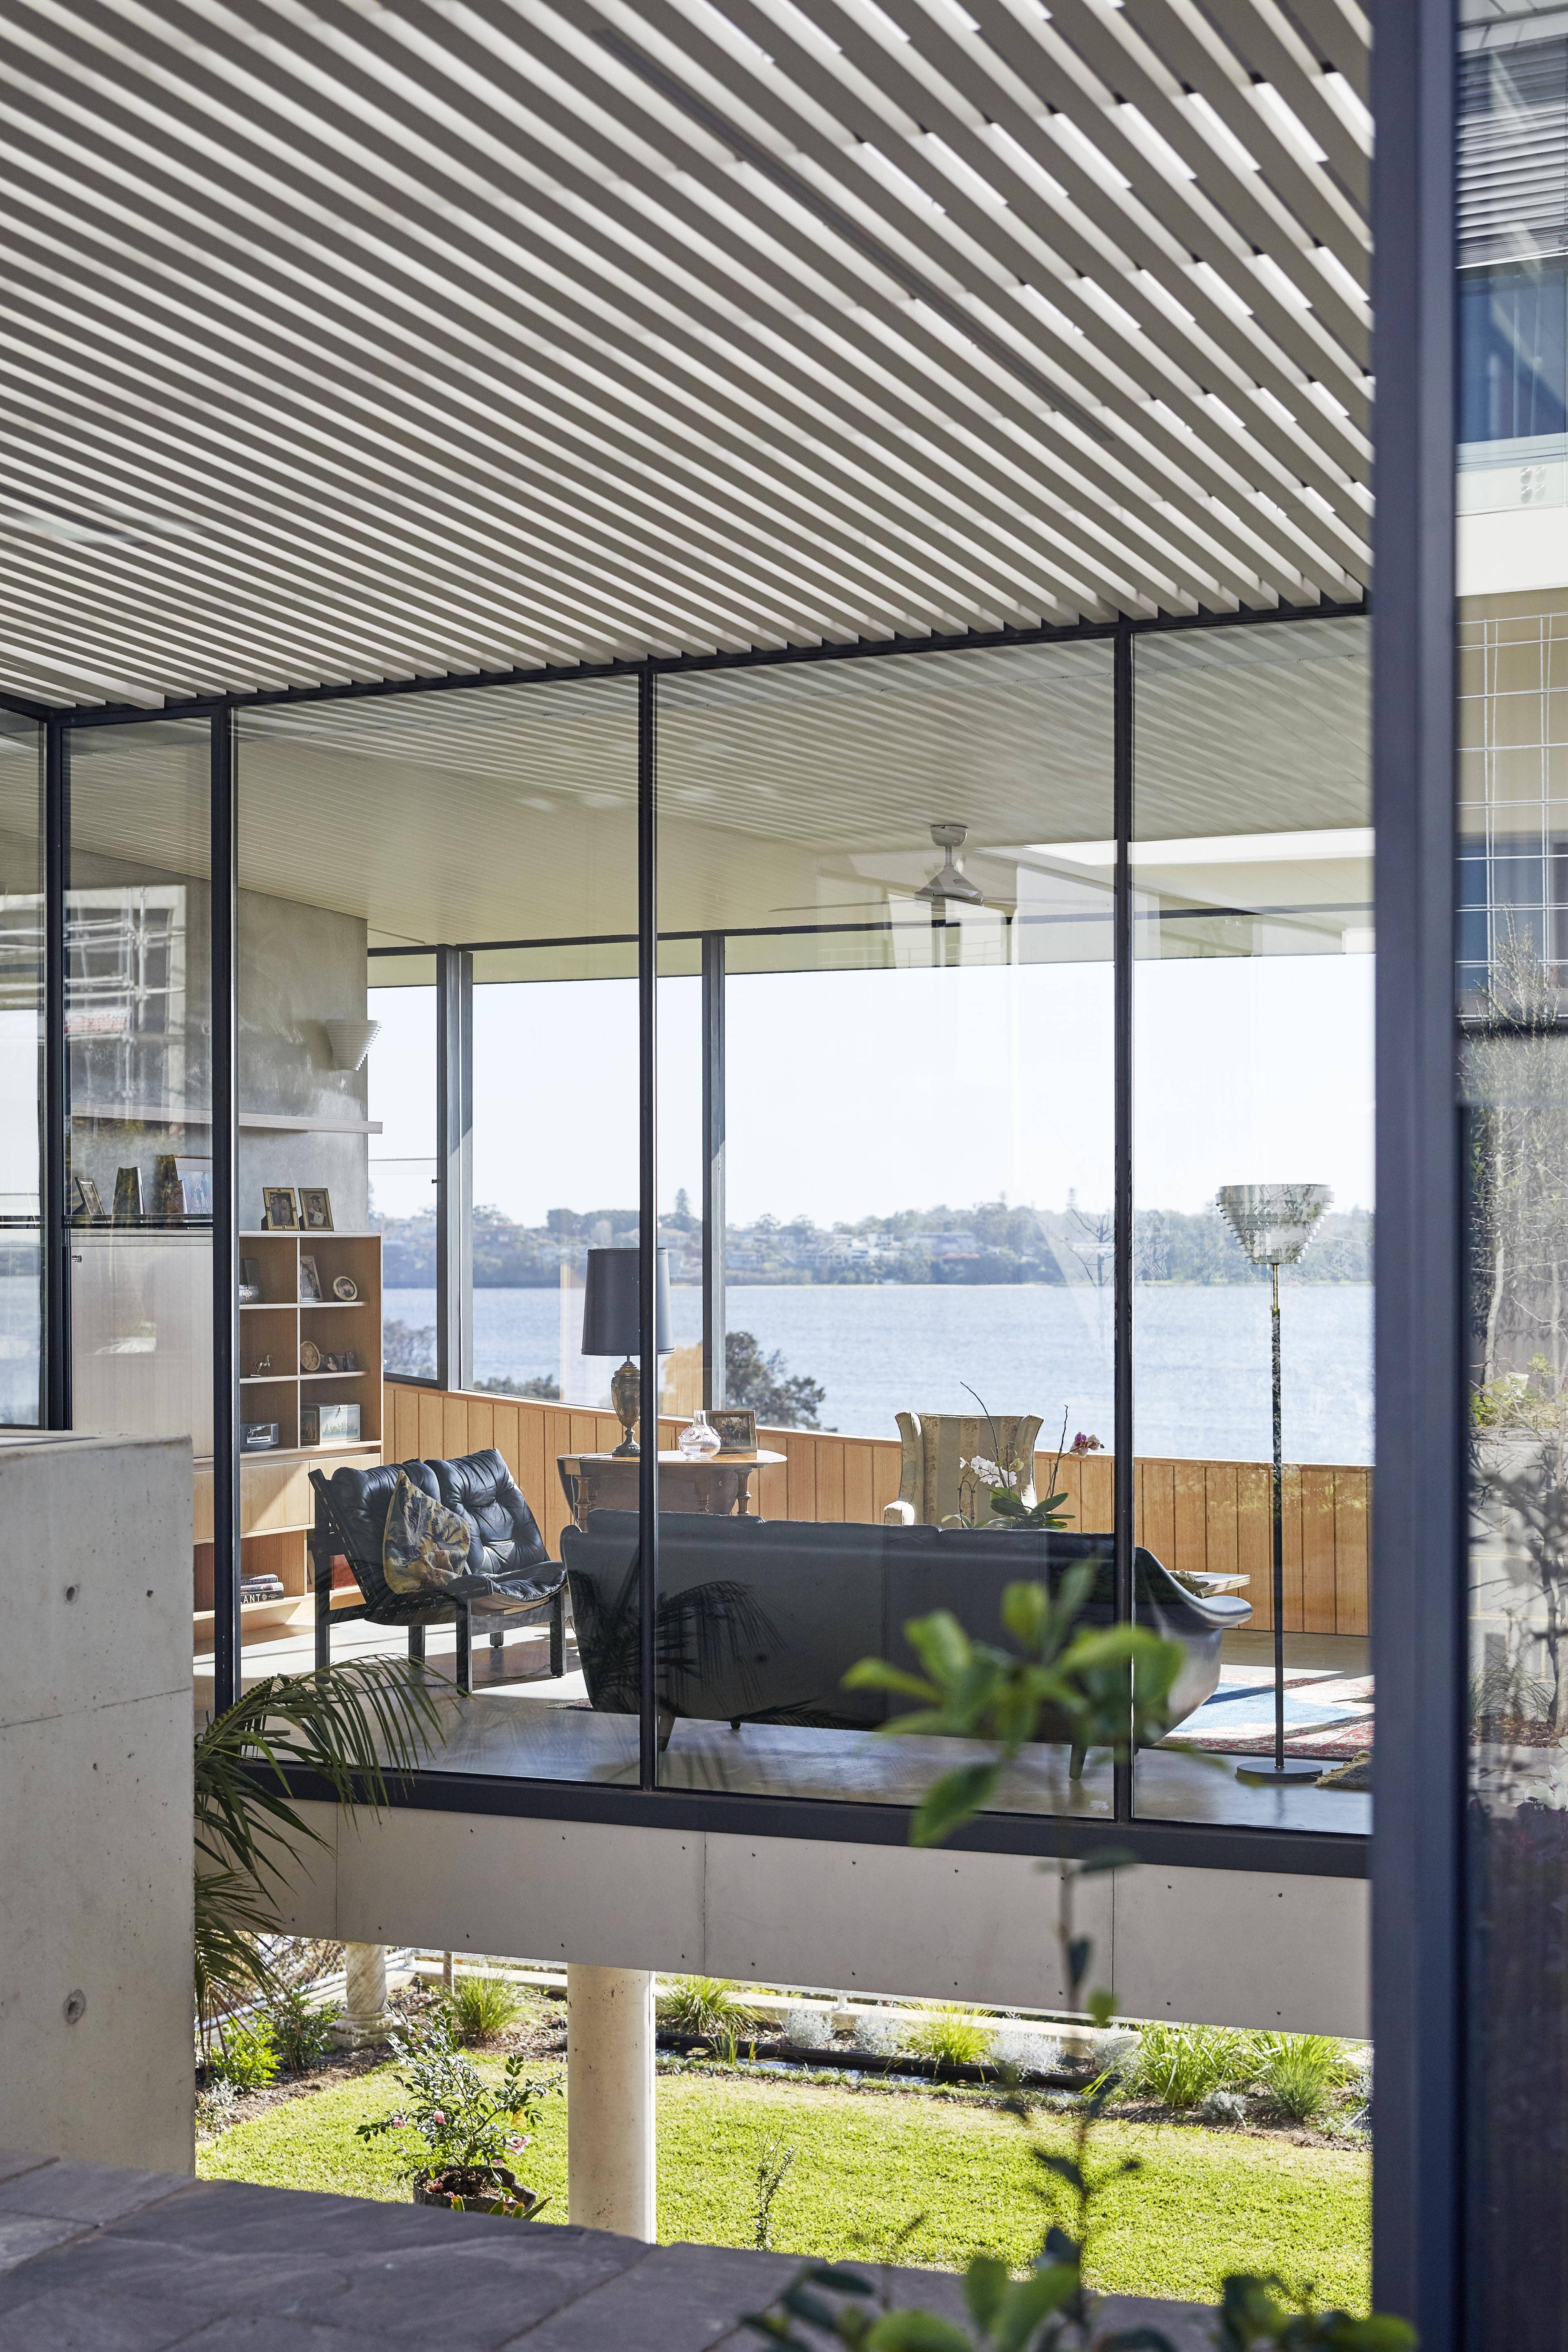 It Demonstrates That Infill Housing Can Be Generous, Modest And Amenable